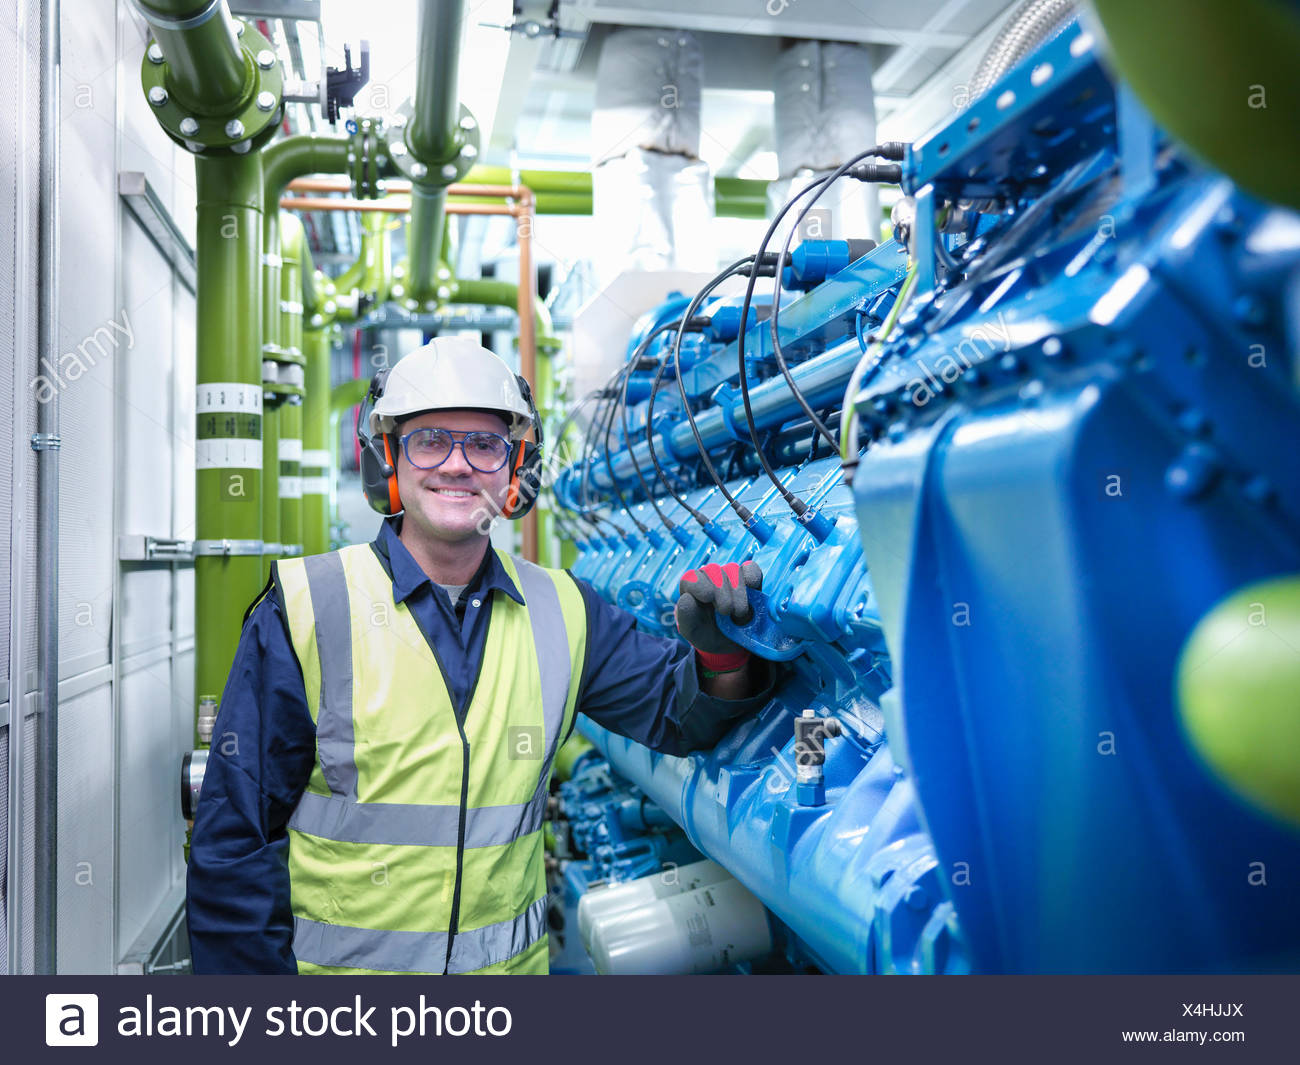 Worker with gas fired generator in gas fired power station - Stock Image